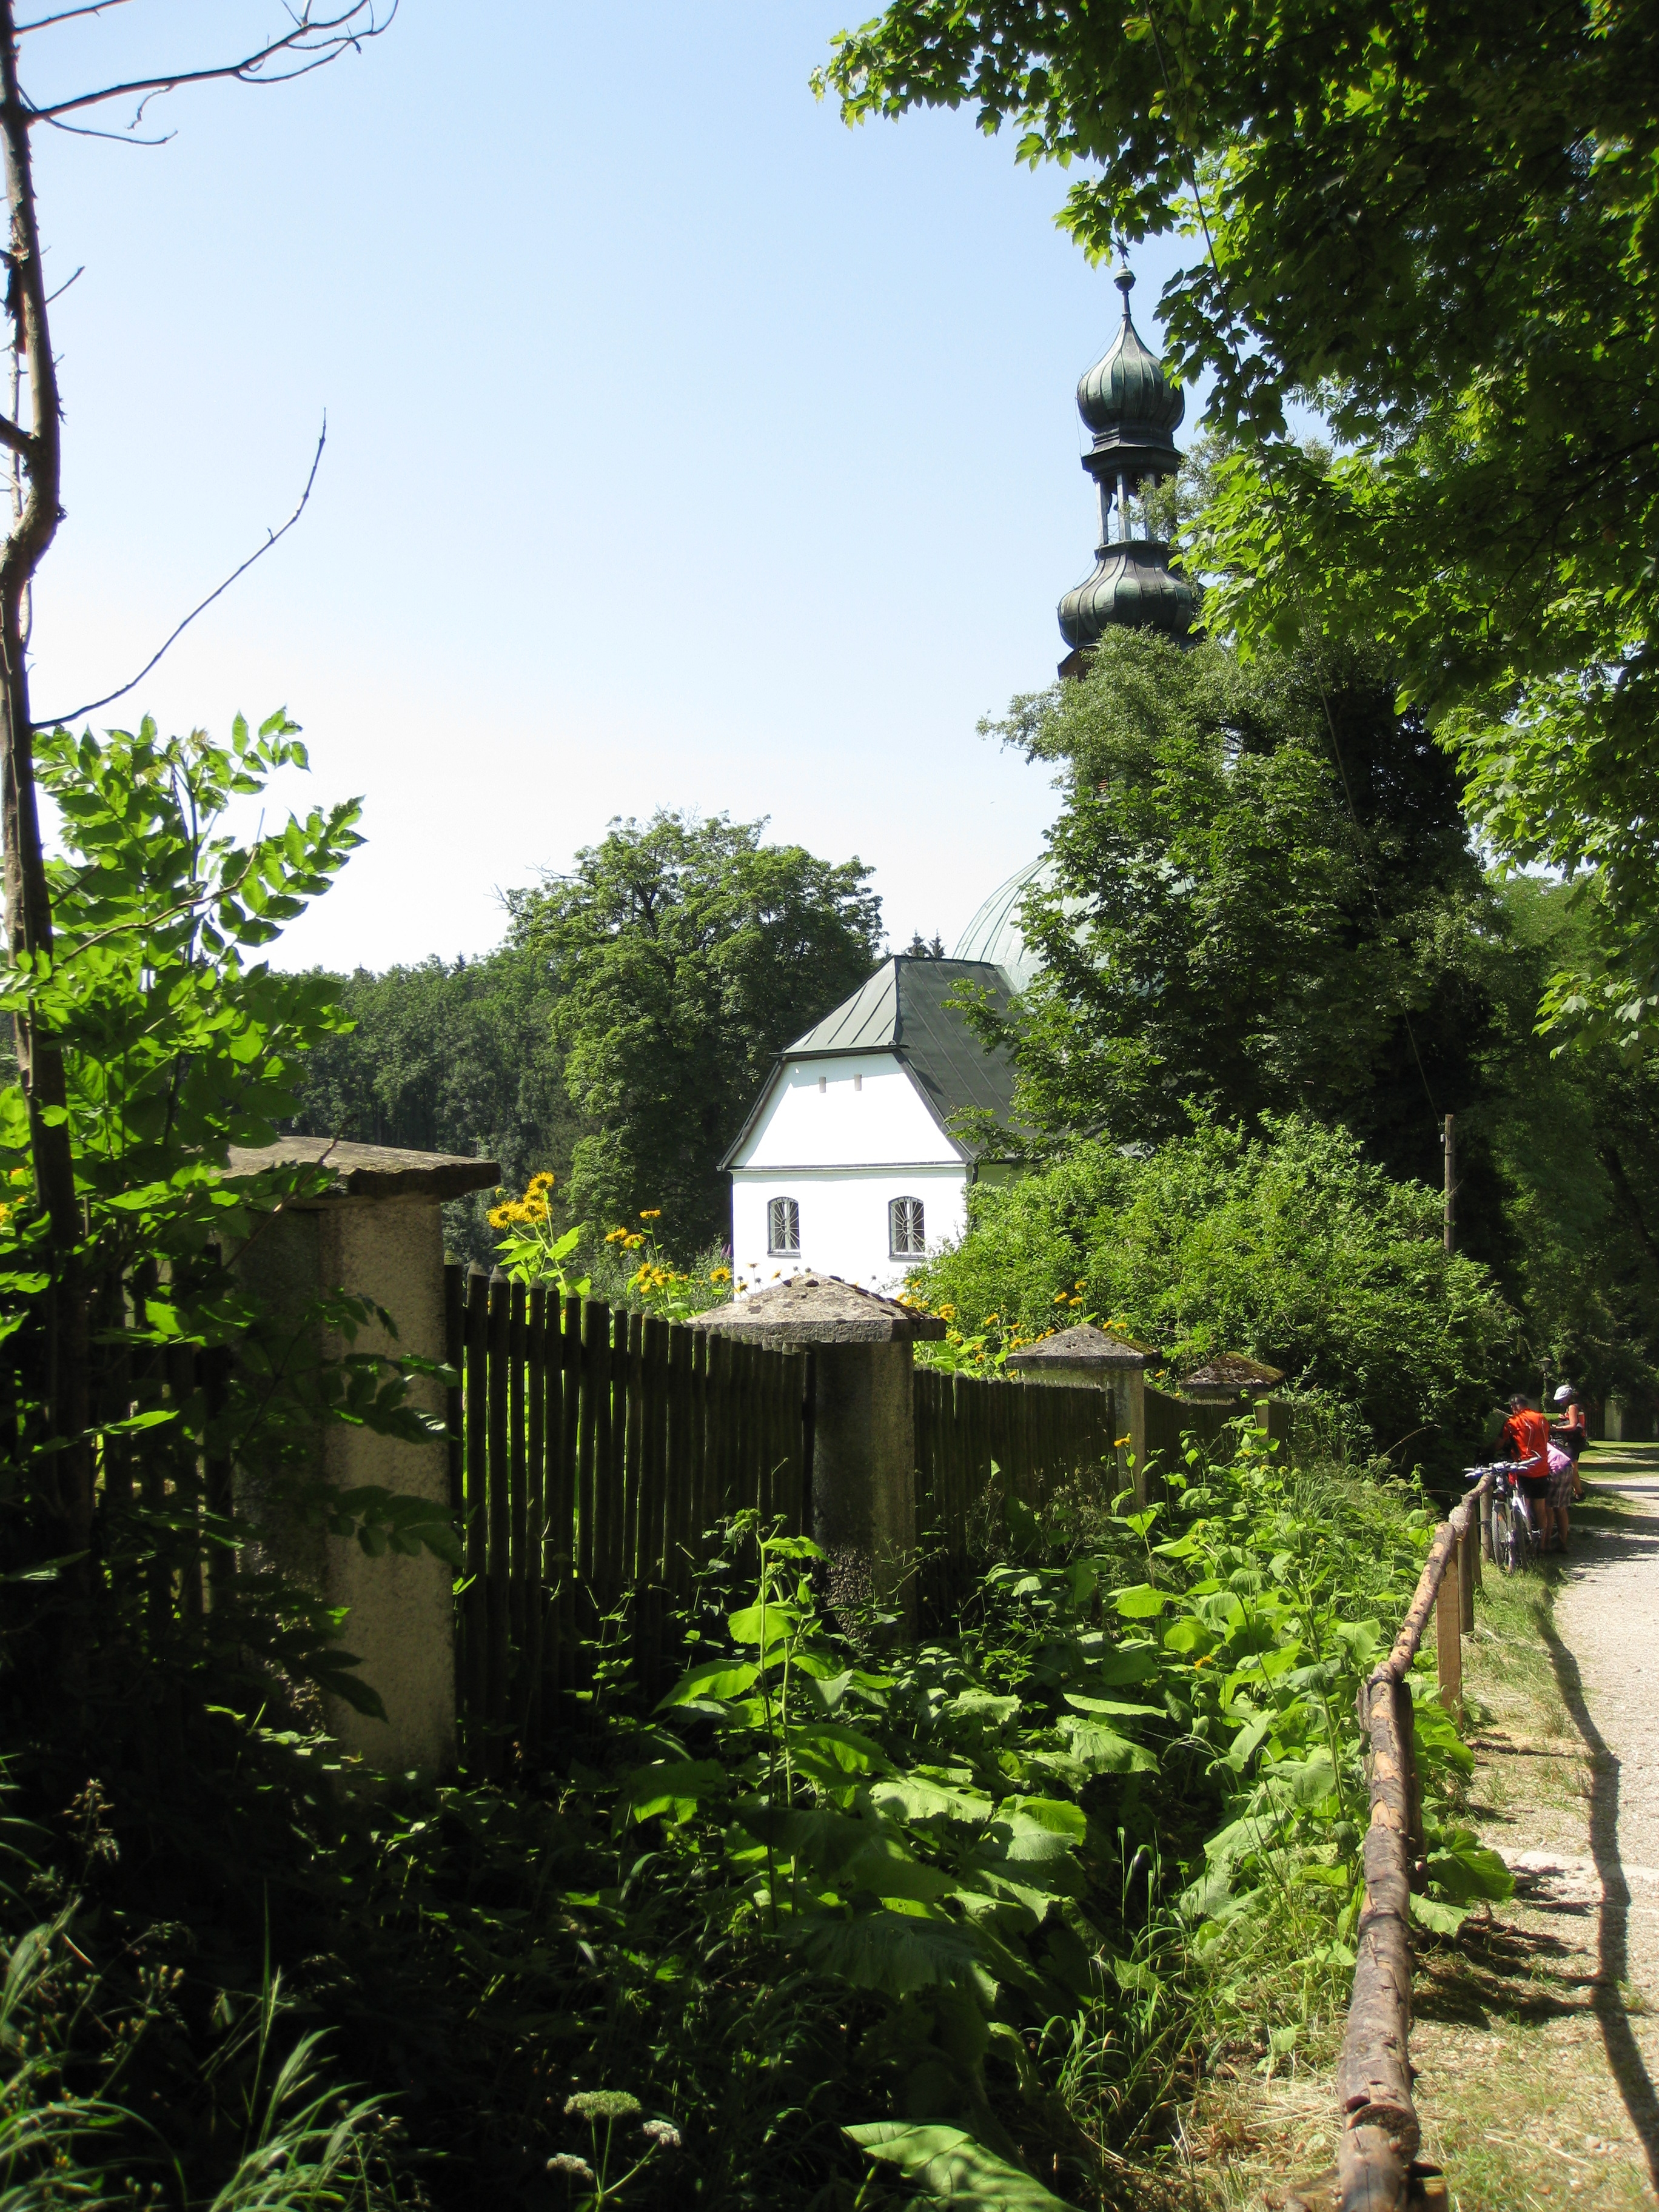 Chapel Mariabrunn, photograph shows path and fence with trees